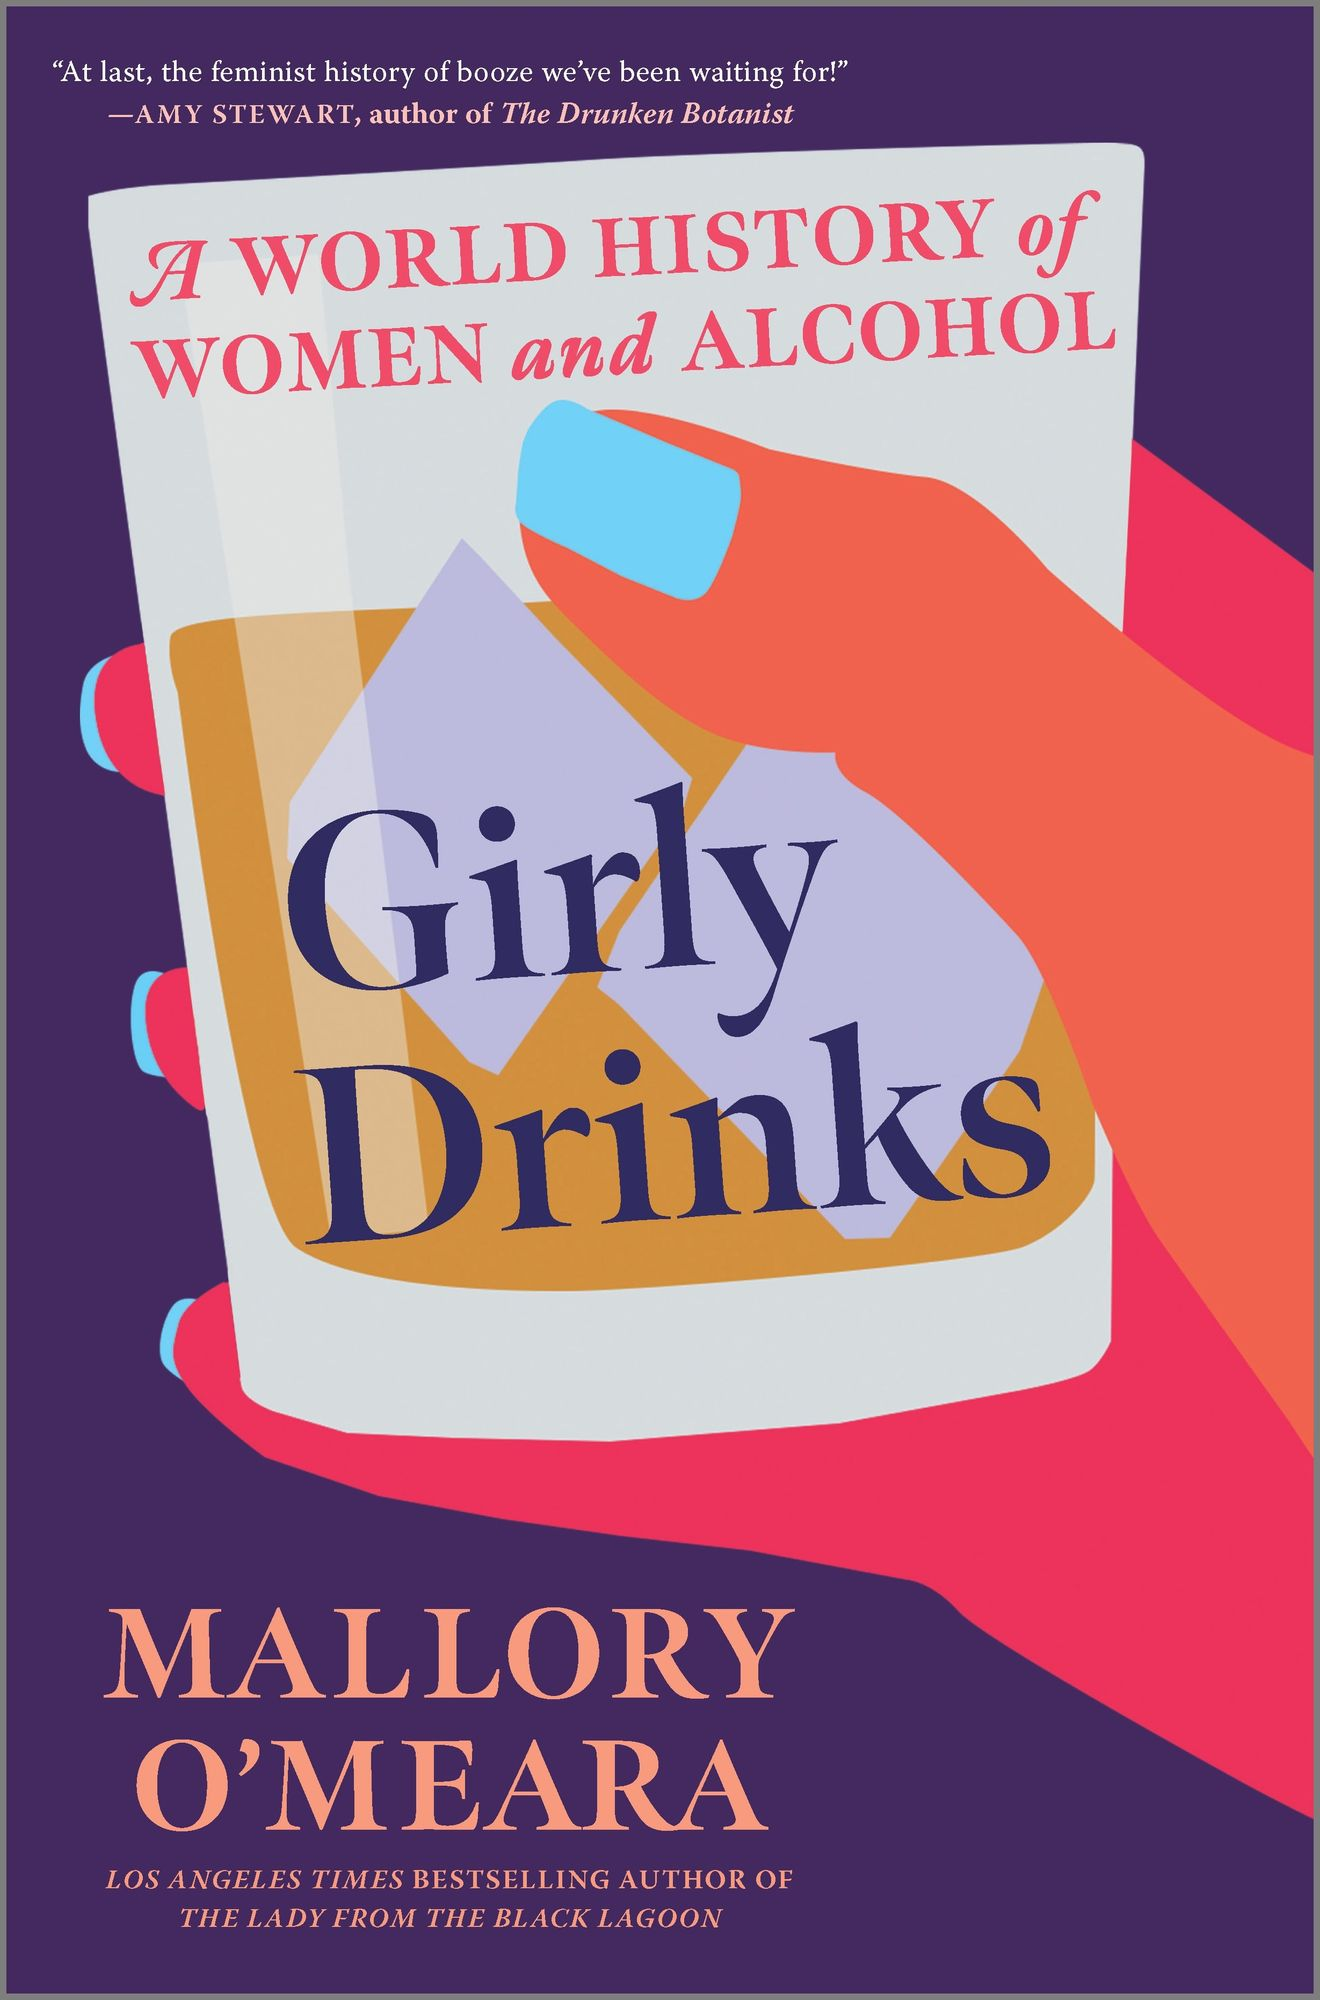 Girly Drinks by Mallory O'Meara